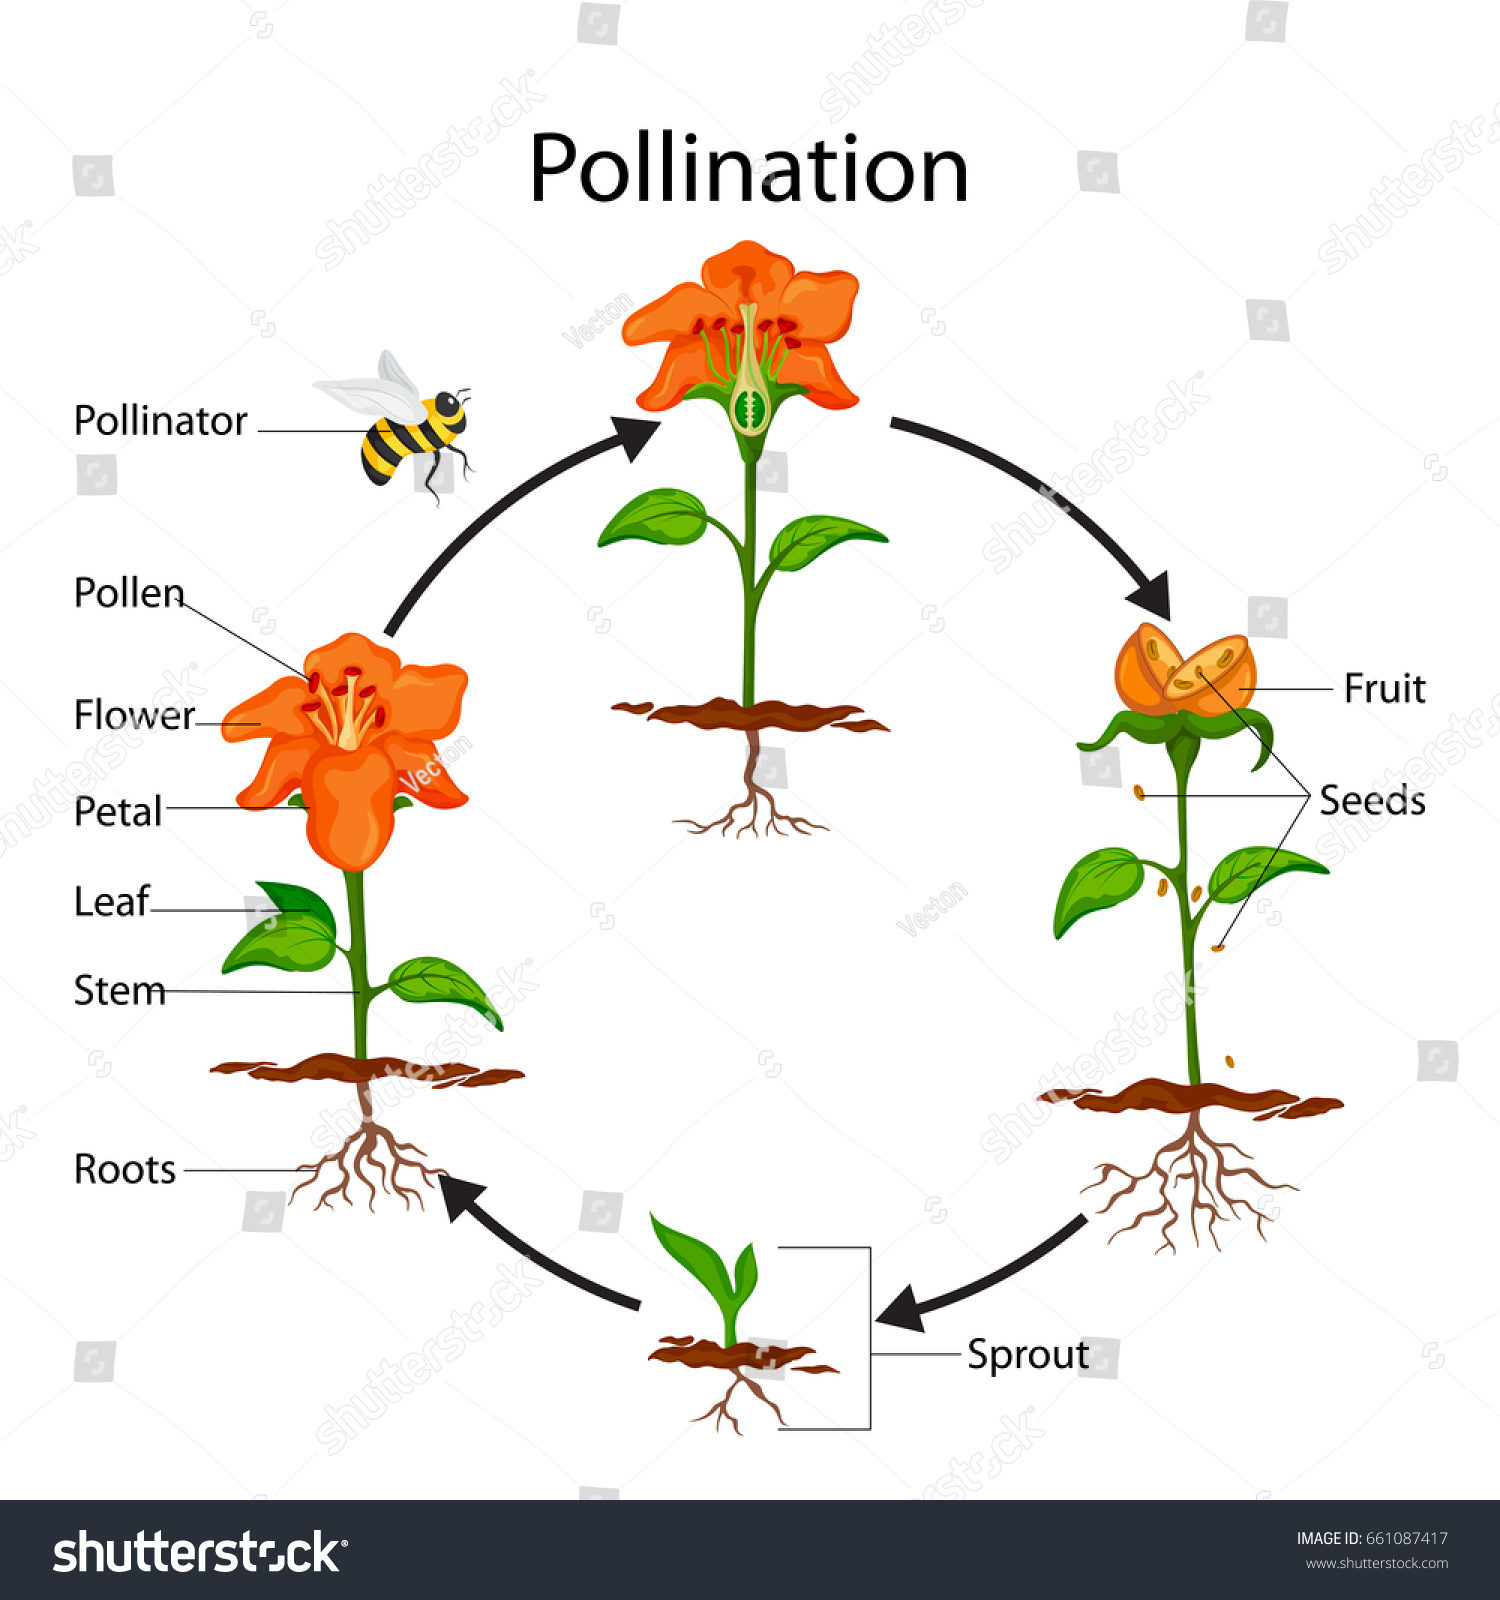 hight resolution of education chart of biology for pollination process diagram vector illustration